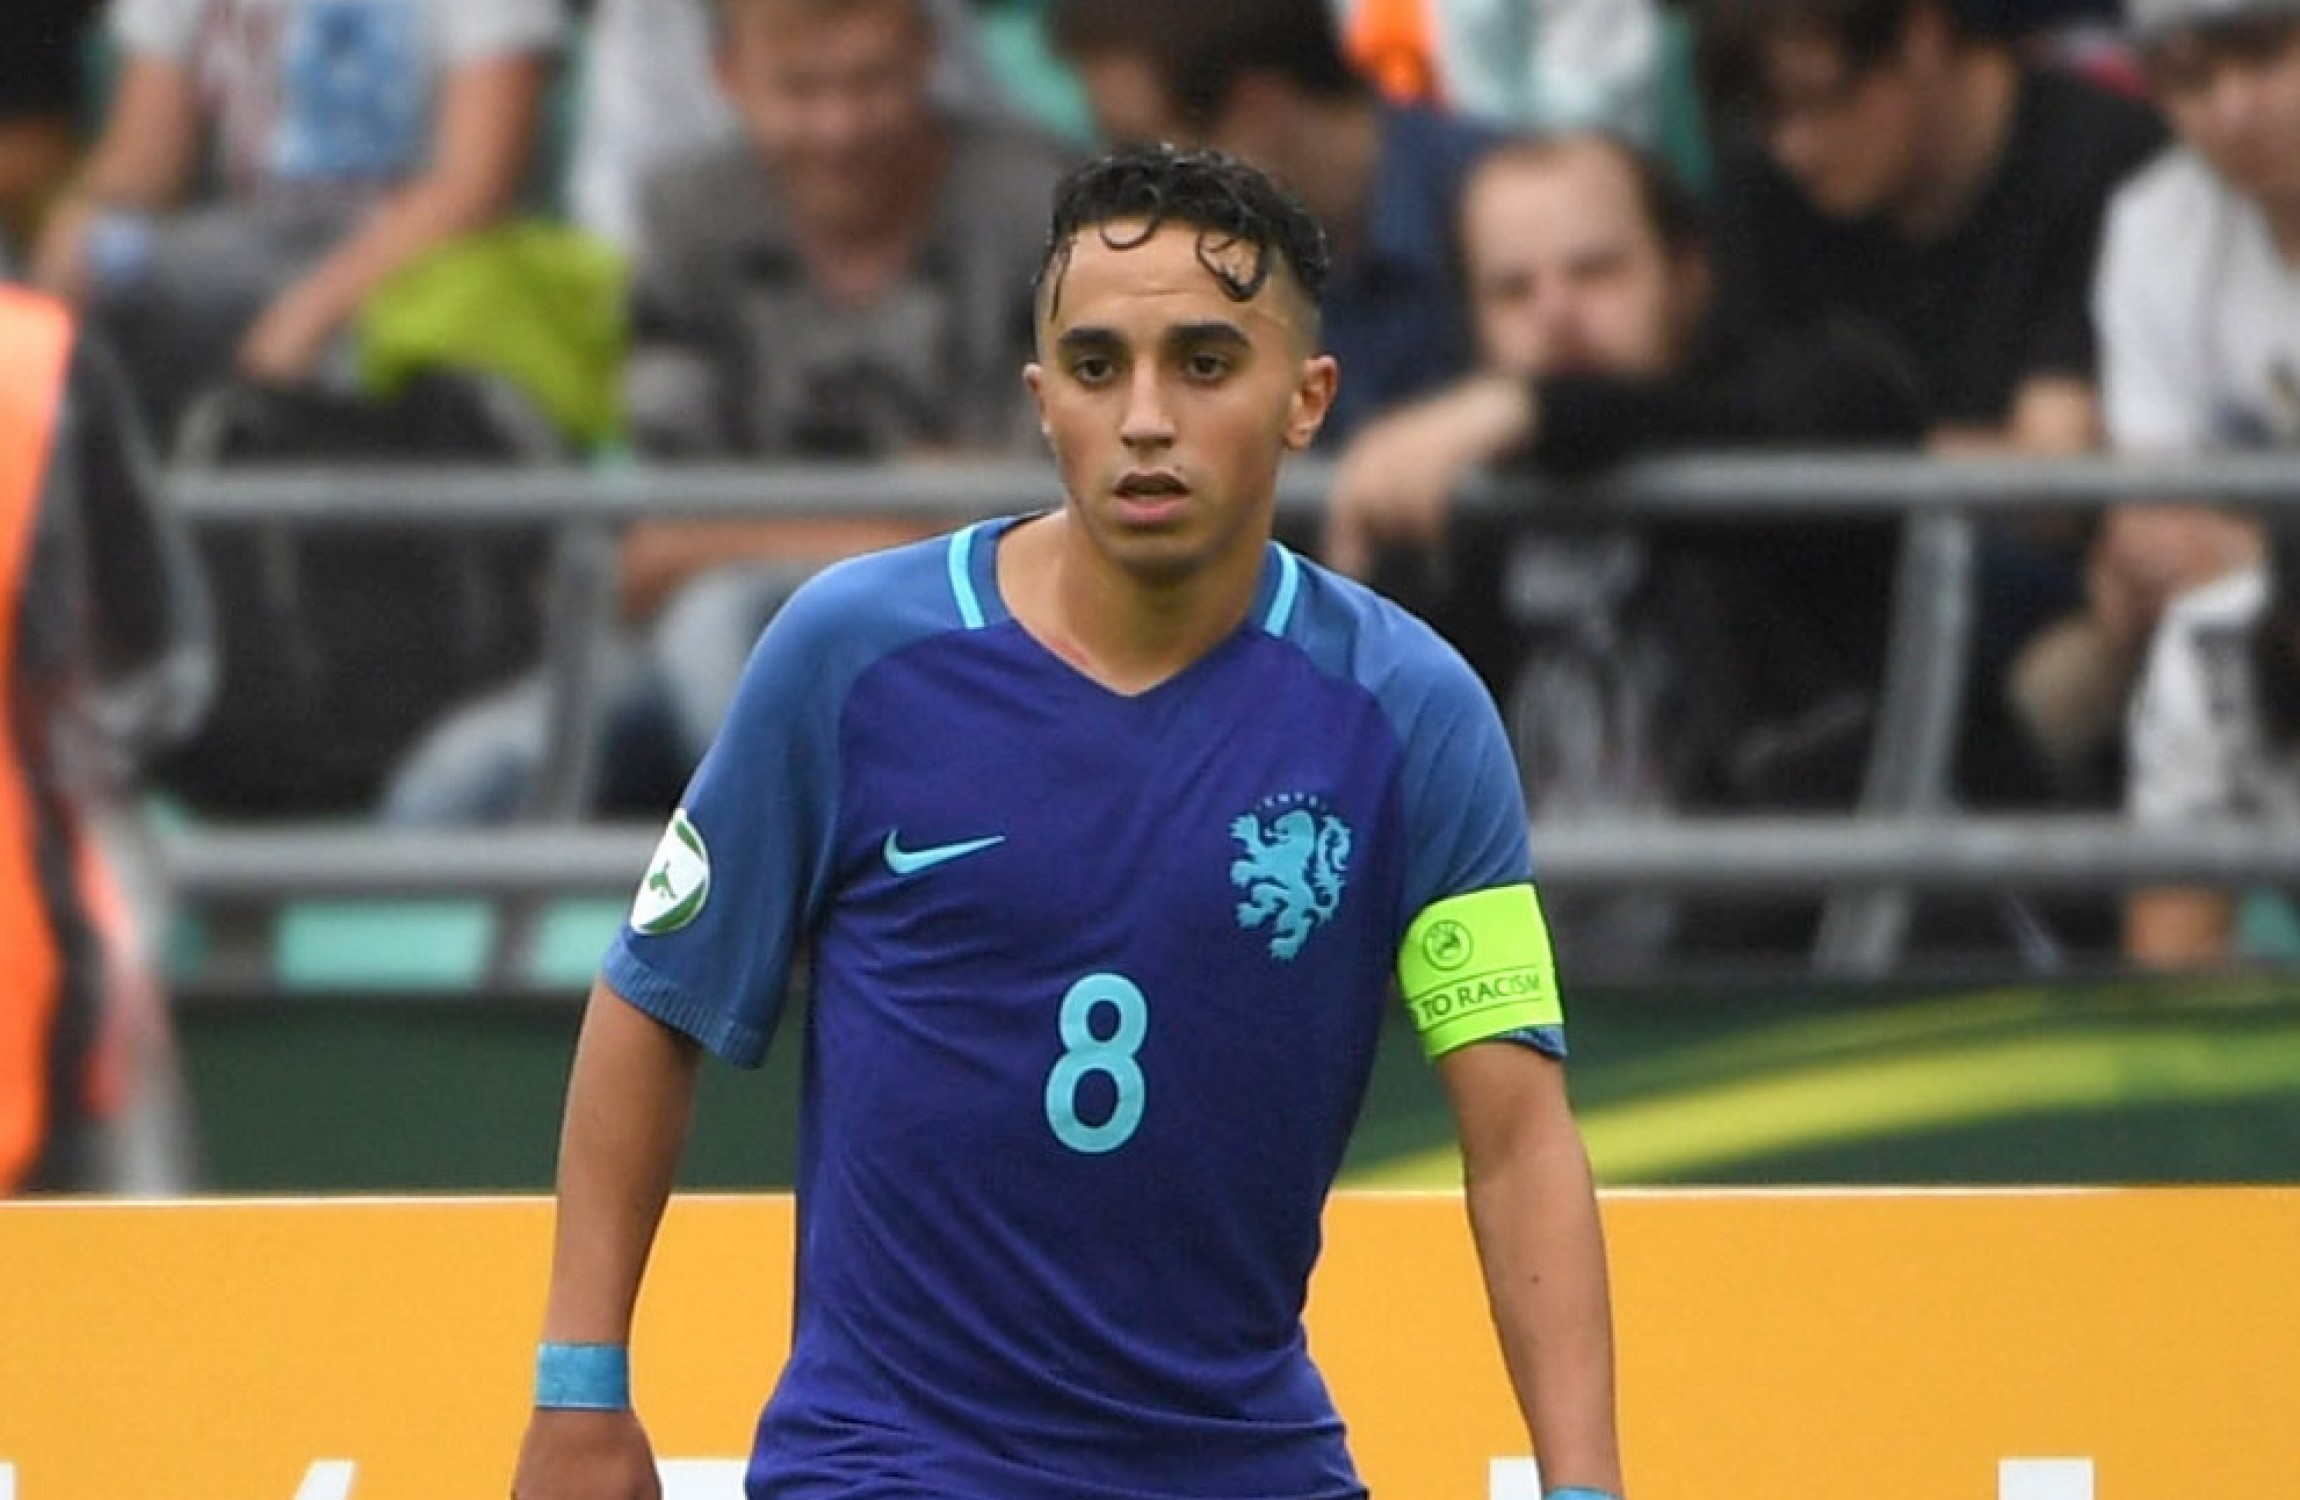 Ajax's Abdelhak Nouri suffered serious, permanent brain damage after collapse